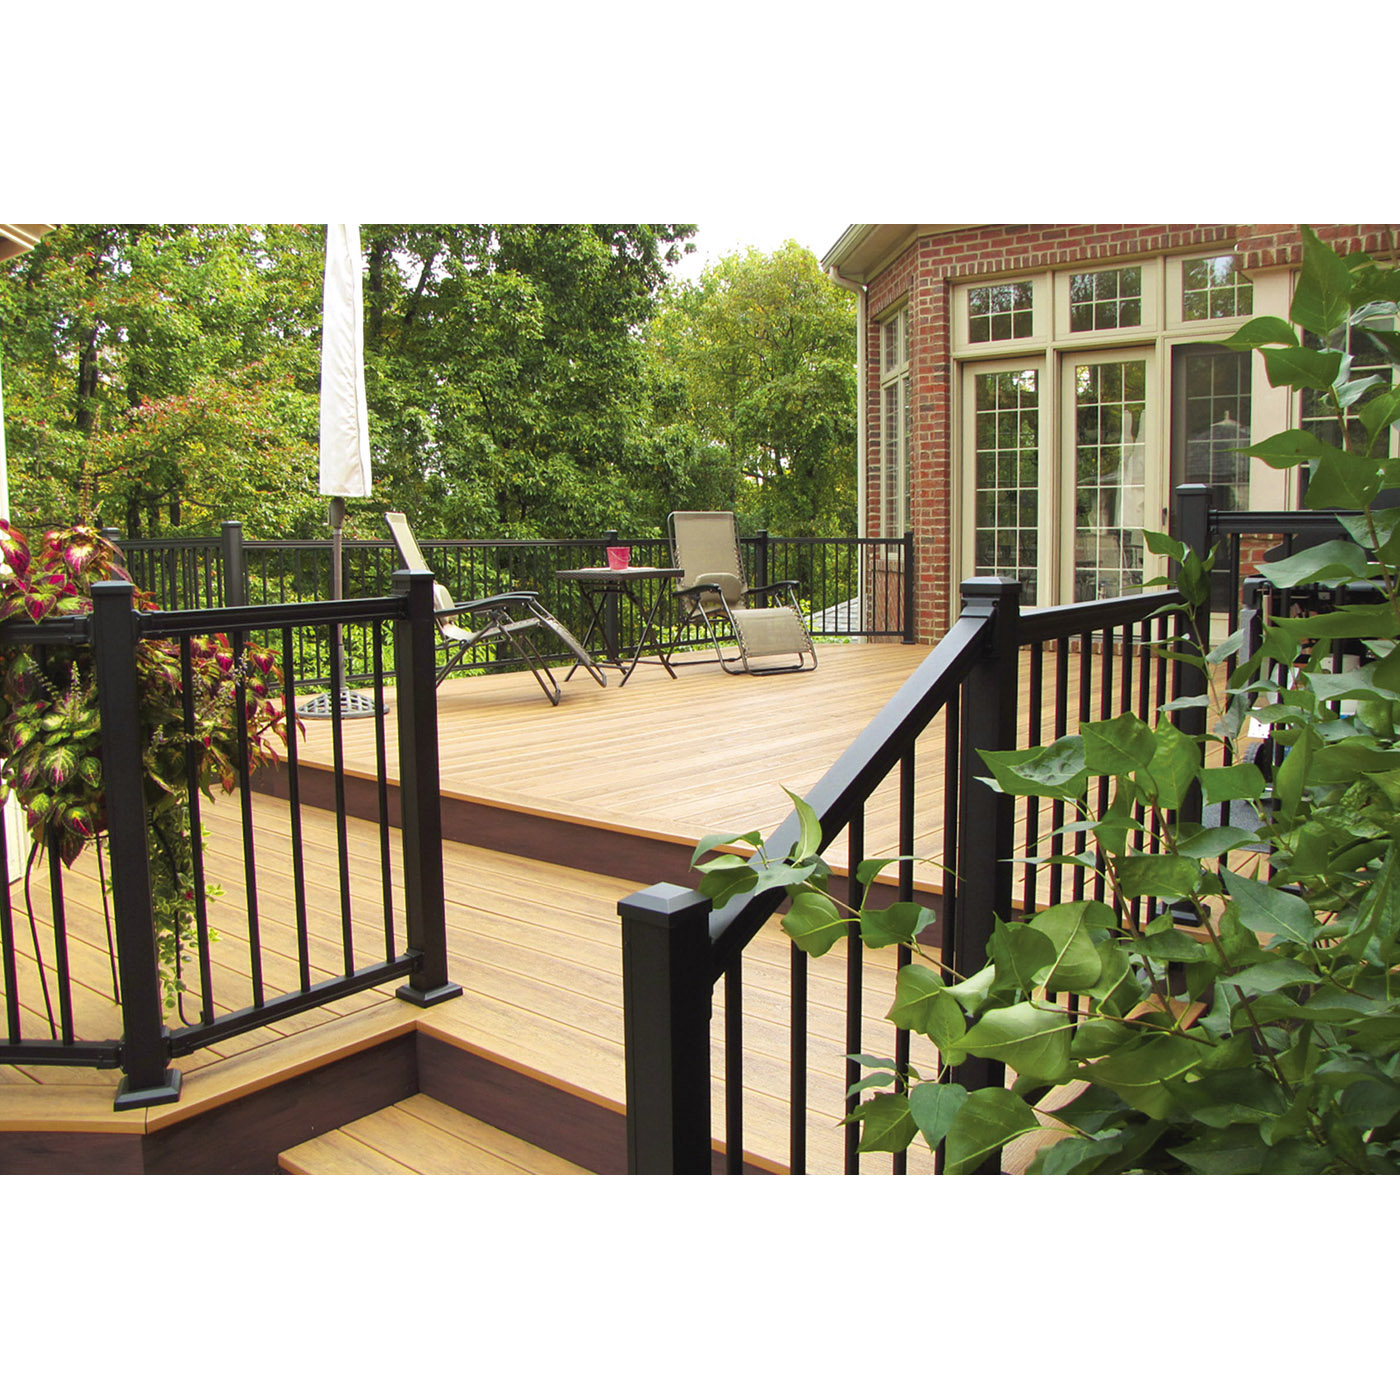 American Railing with Round Balusters